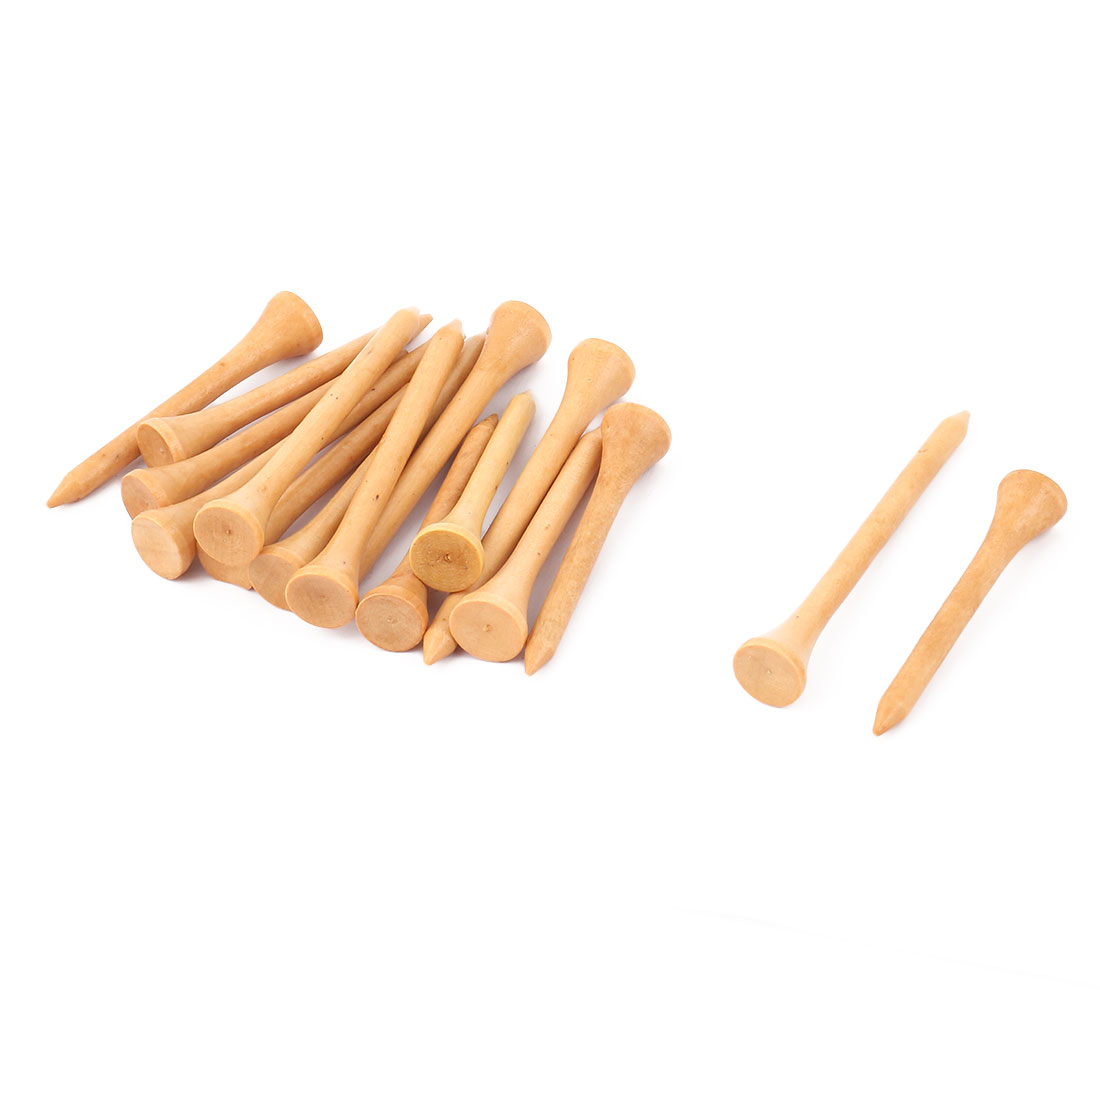 16 Pcs 56mm Beige Wooden Zero Friction Golf Tee Accessory